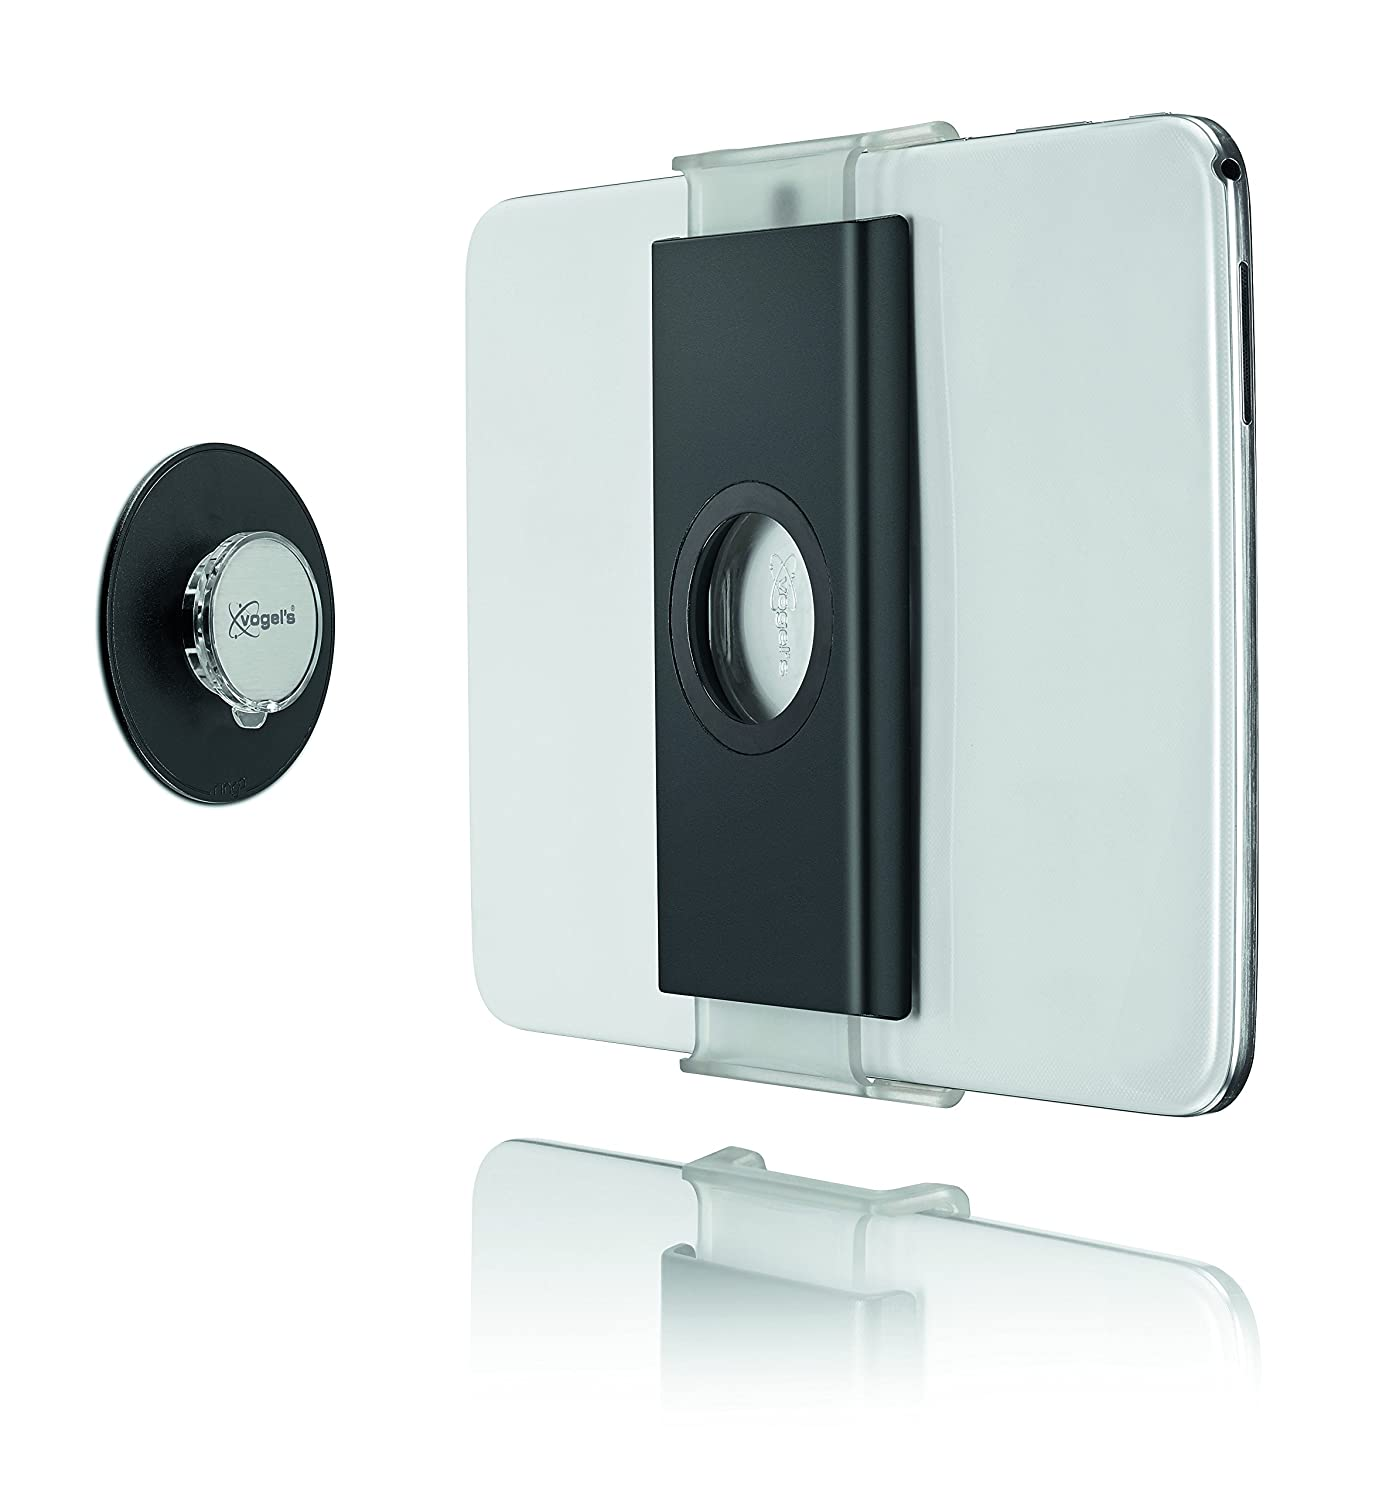 Vogel's iPad and Tablet Wall Mount, Universal and Adjustable - TMS 1010 Rotating Mount for Home